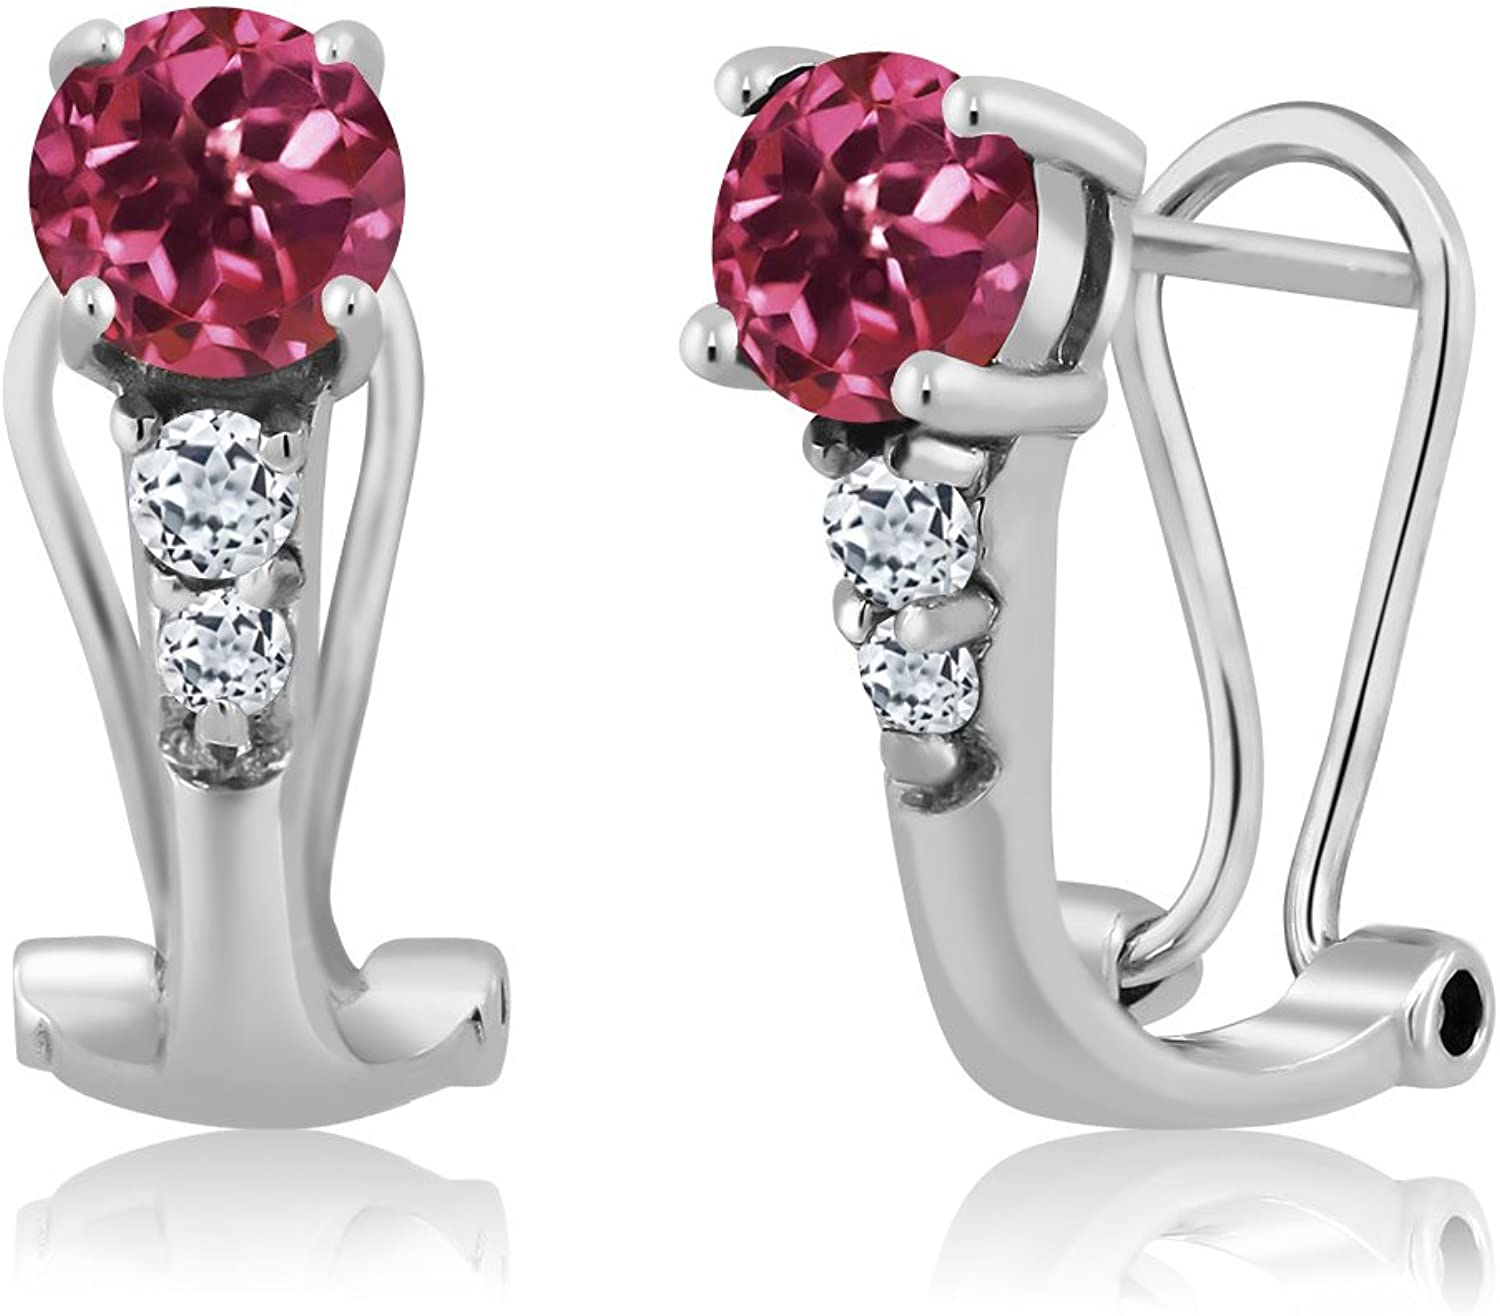 1.24 Ct Round Pink Tourmaline White Topaz 925 Sterling Silver Earrings